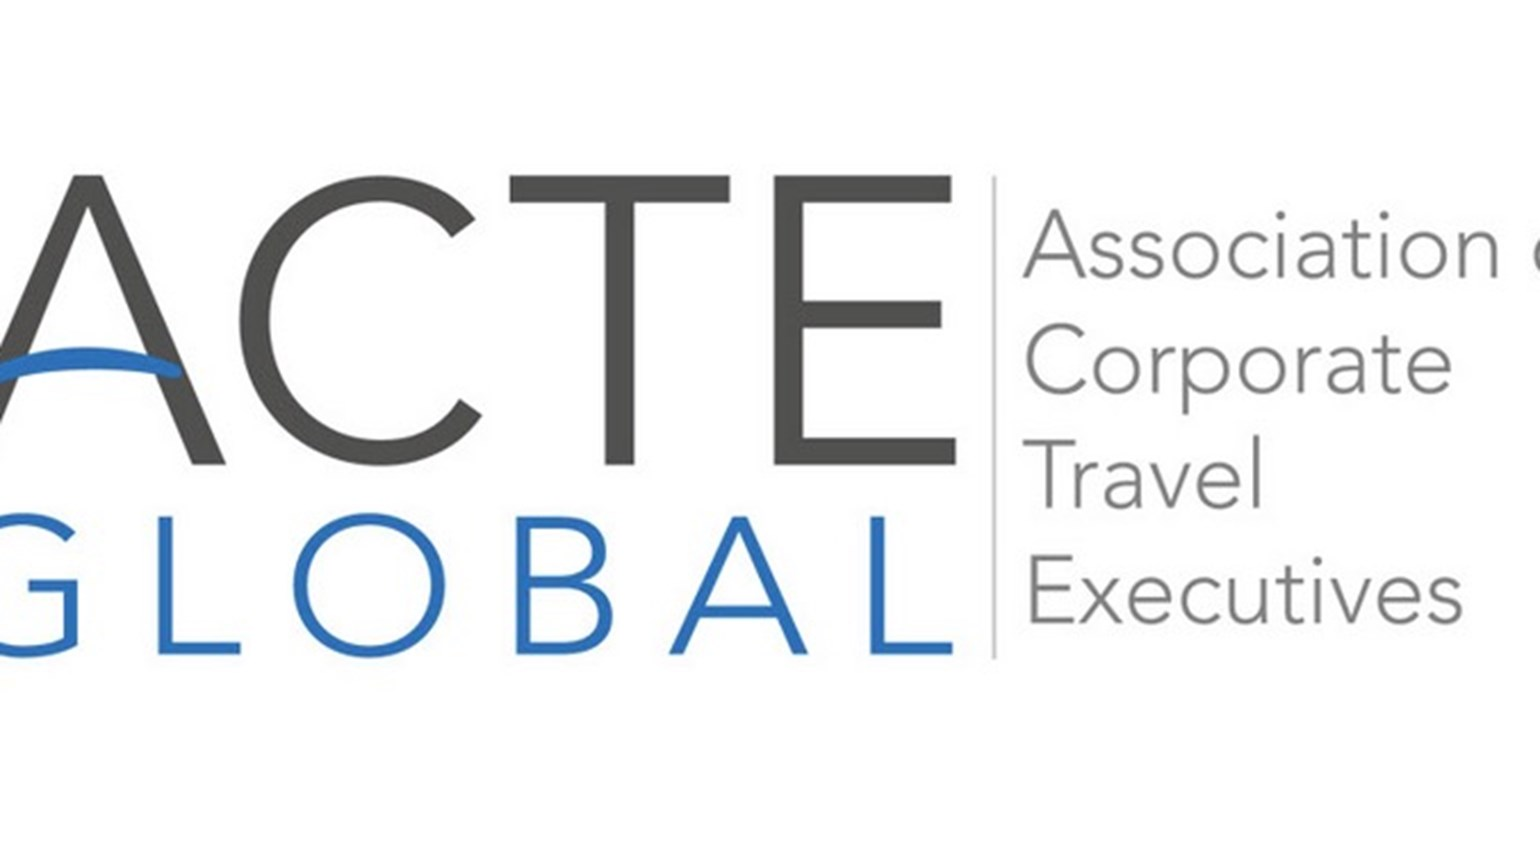 ACTE succumbs to coronavirus and cancelled events